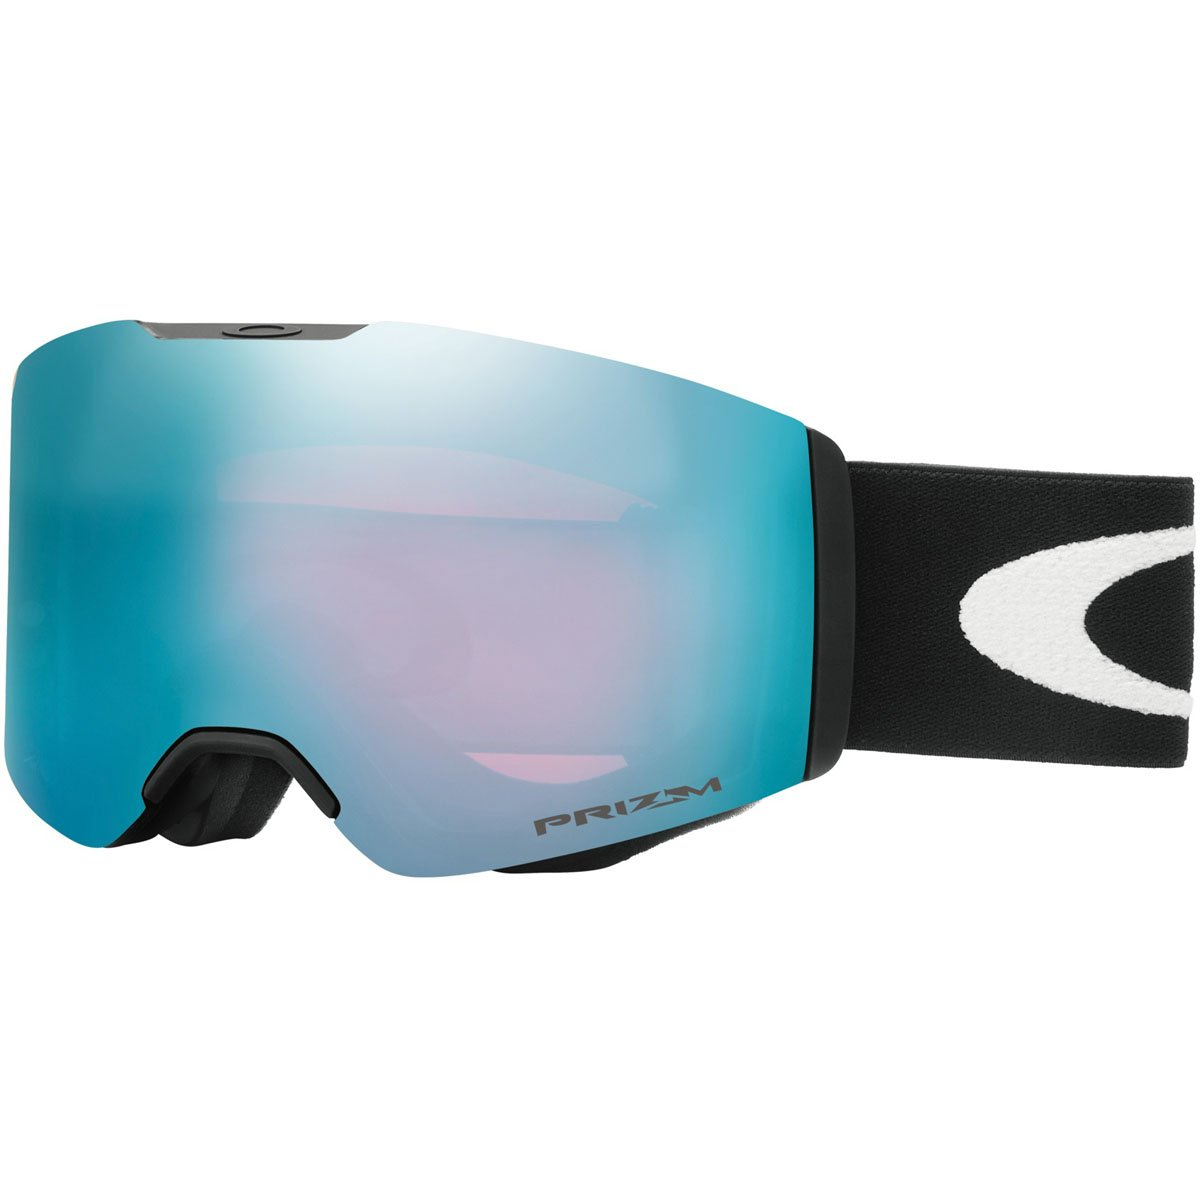 Oakley Fall Line Snow Goggles, Matte Black Frame, Prizm Sapphire Lens, Medium by Oakley